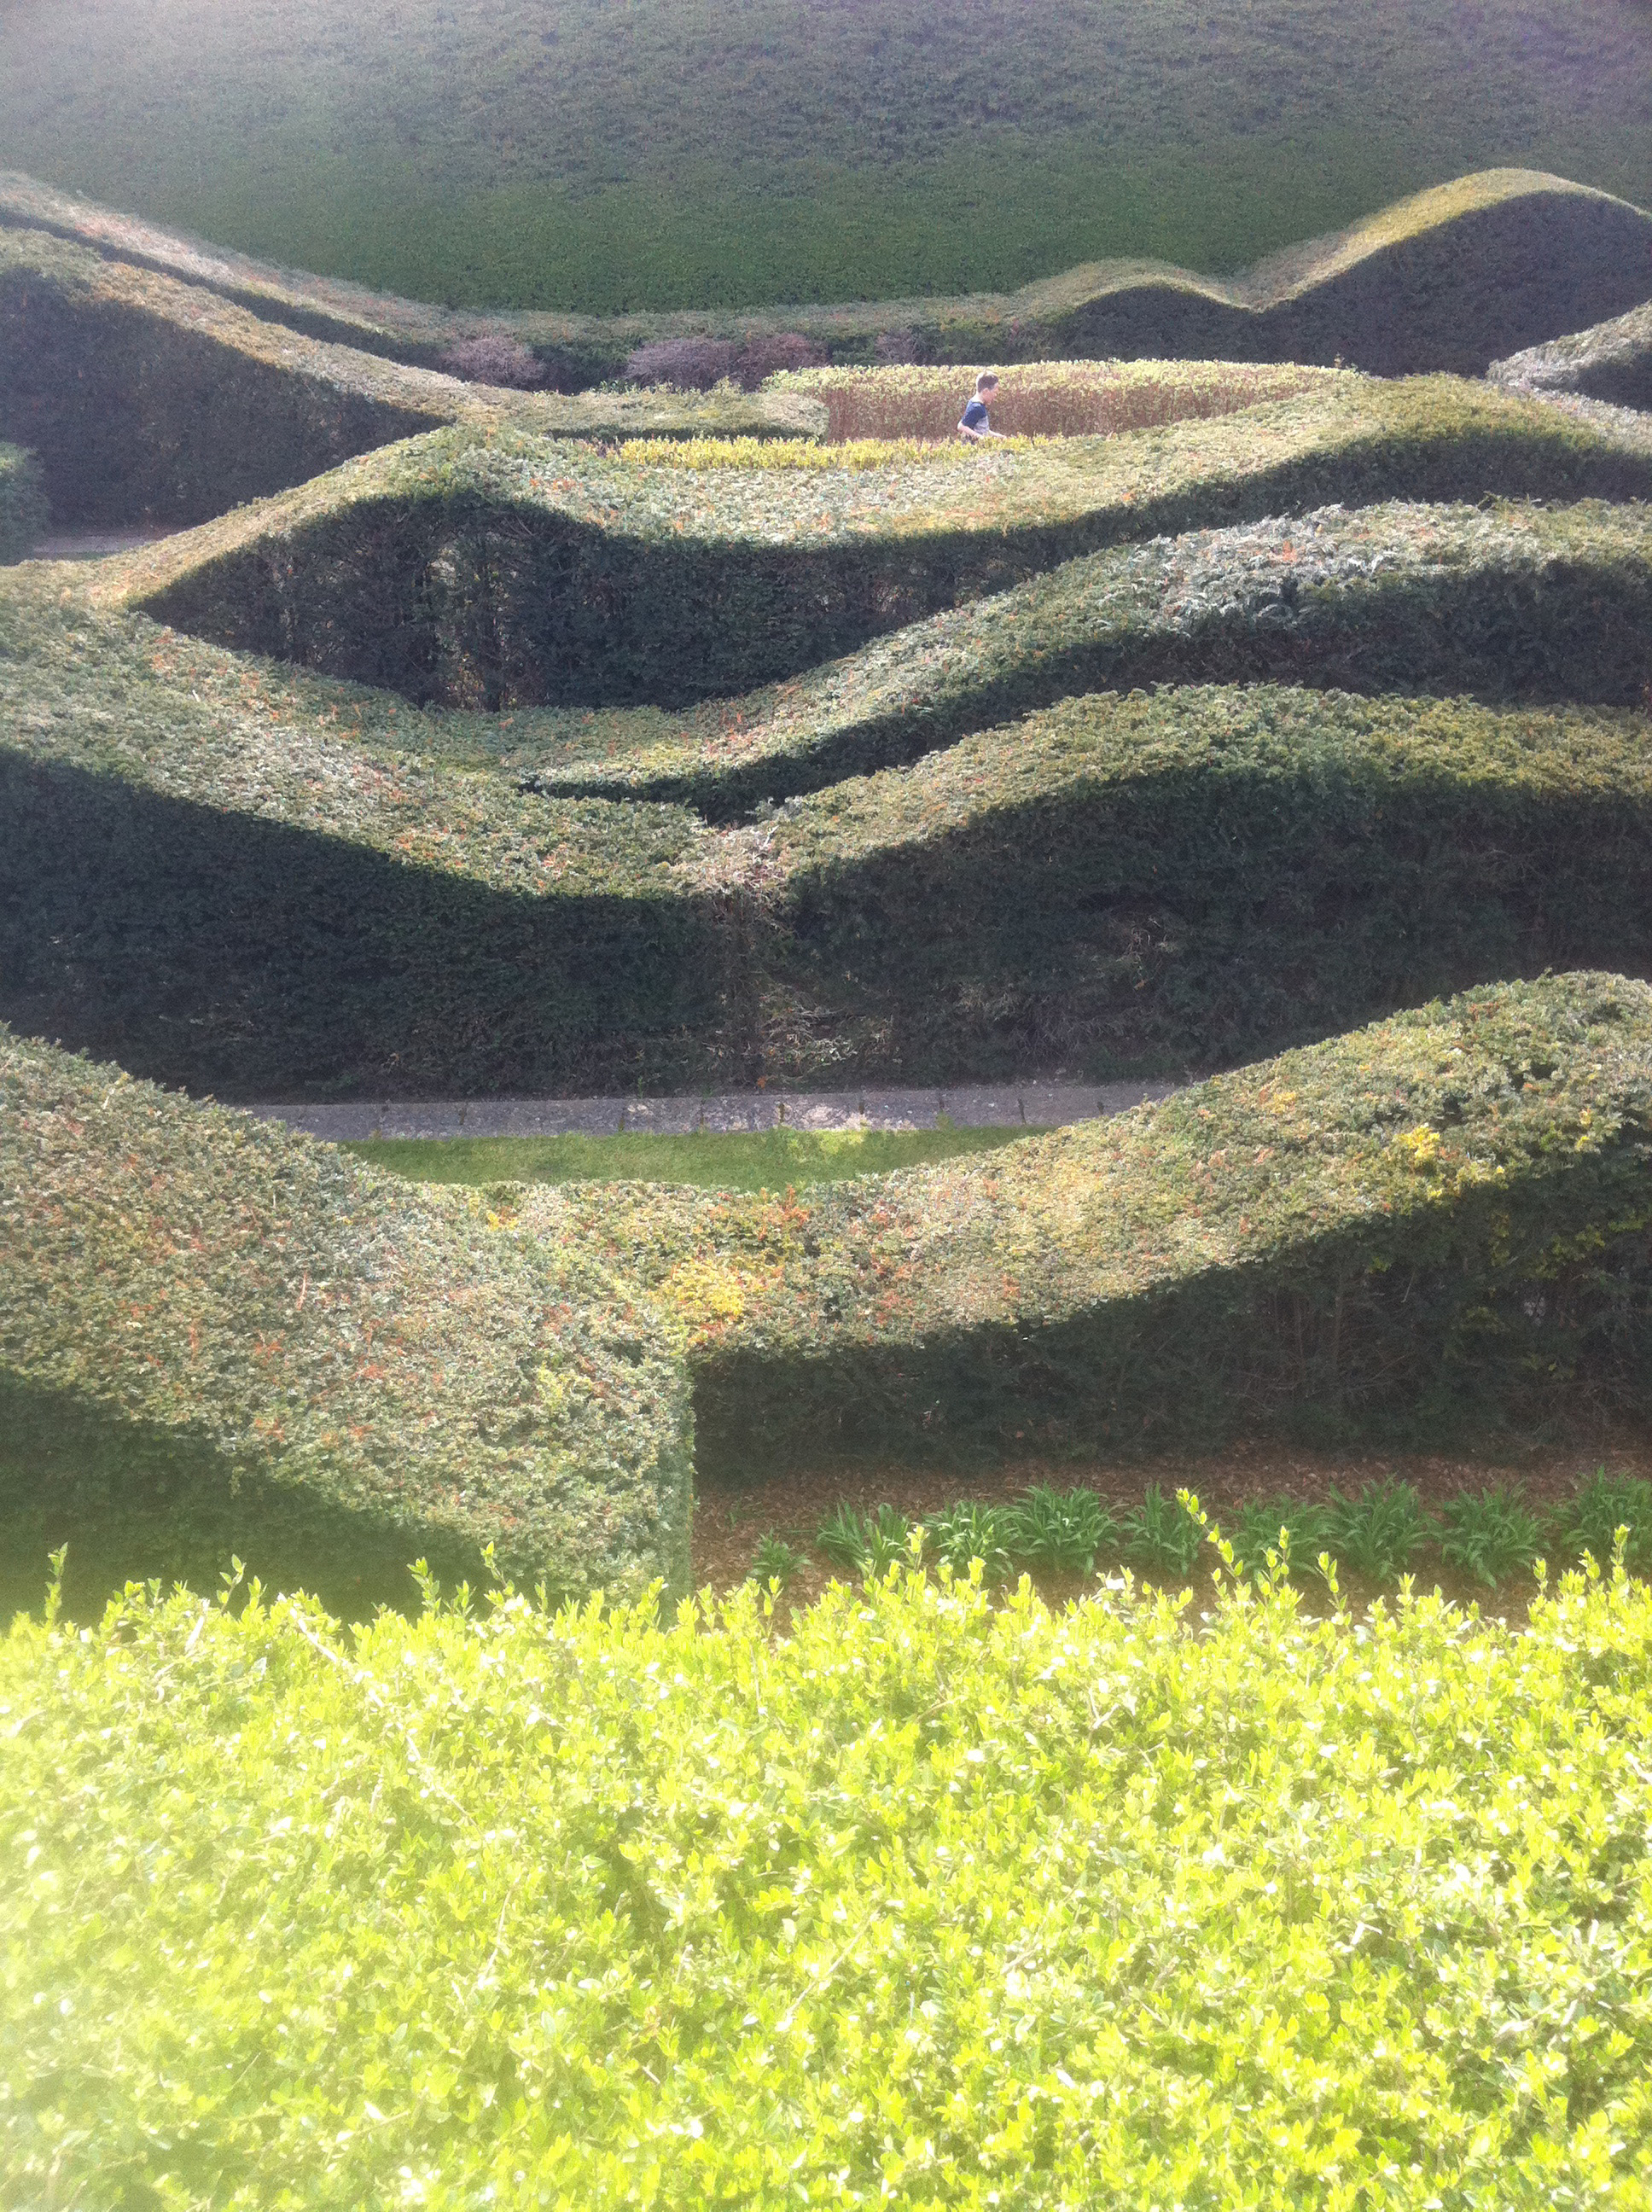 Wavy hedges at Thames Barrier Park.